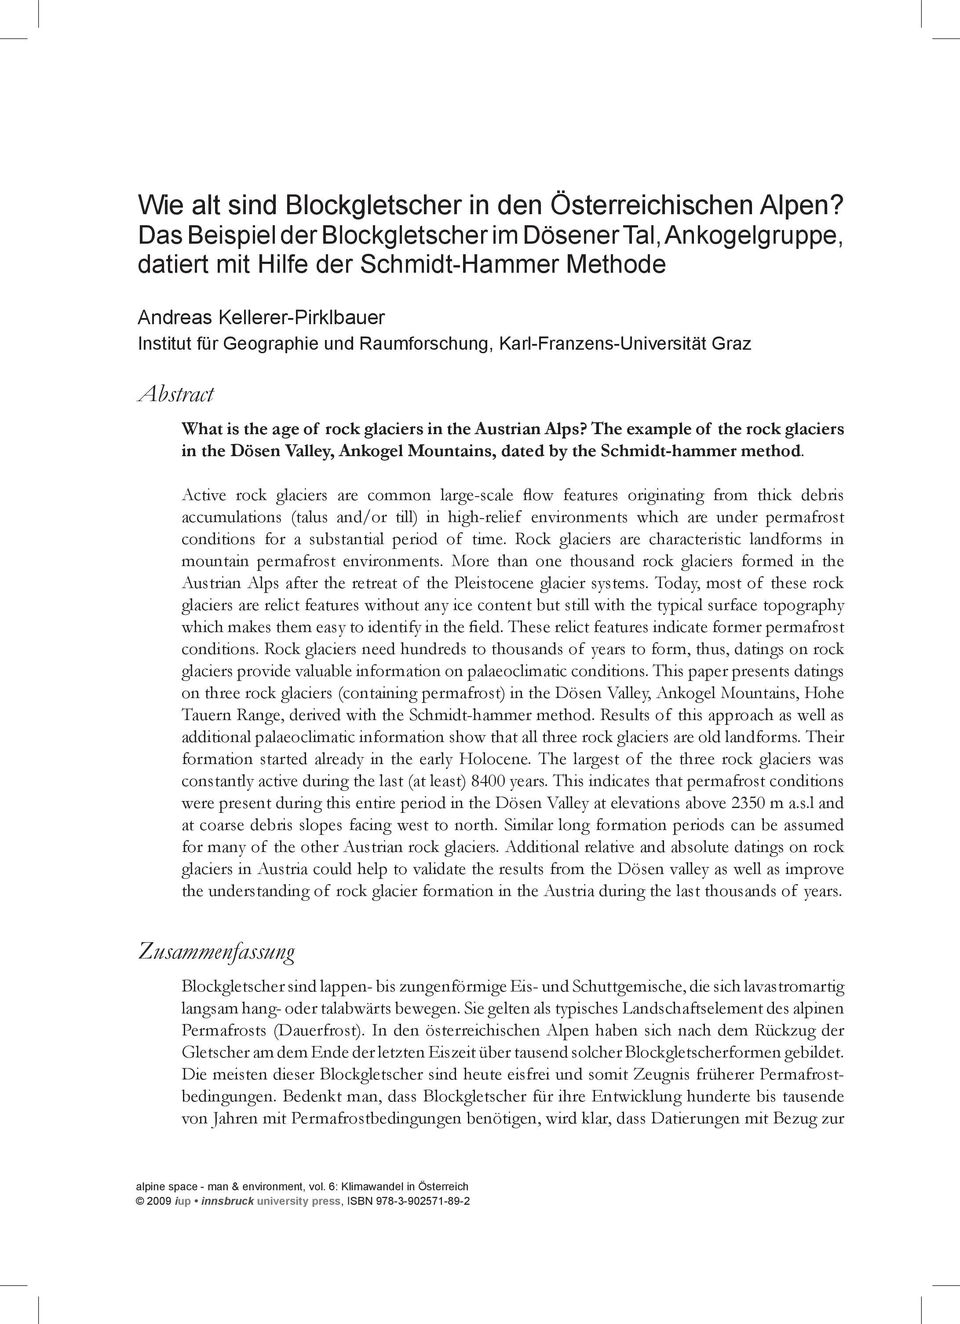 Karl-Franzens-Universität Graz Abstract What is the age of rock glaciers in the Austrian Alps?